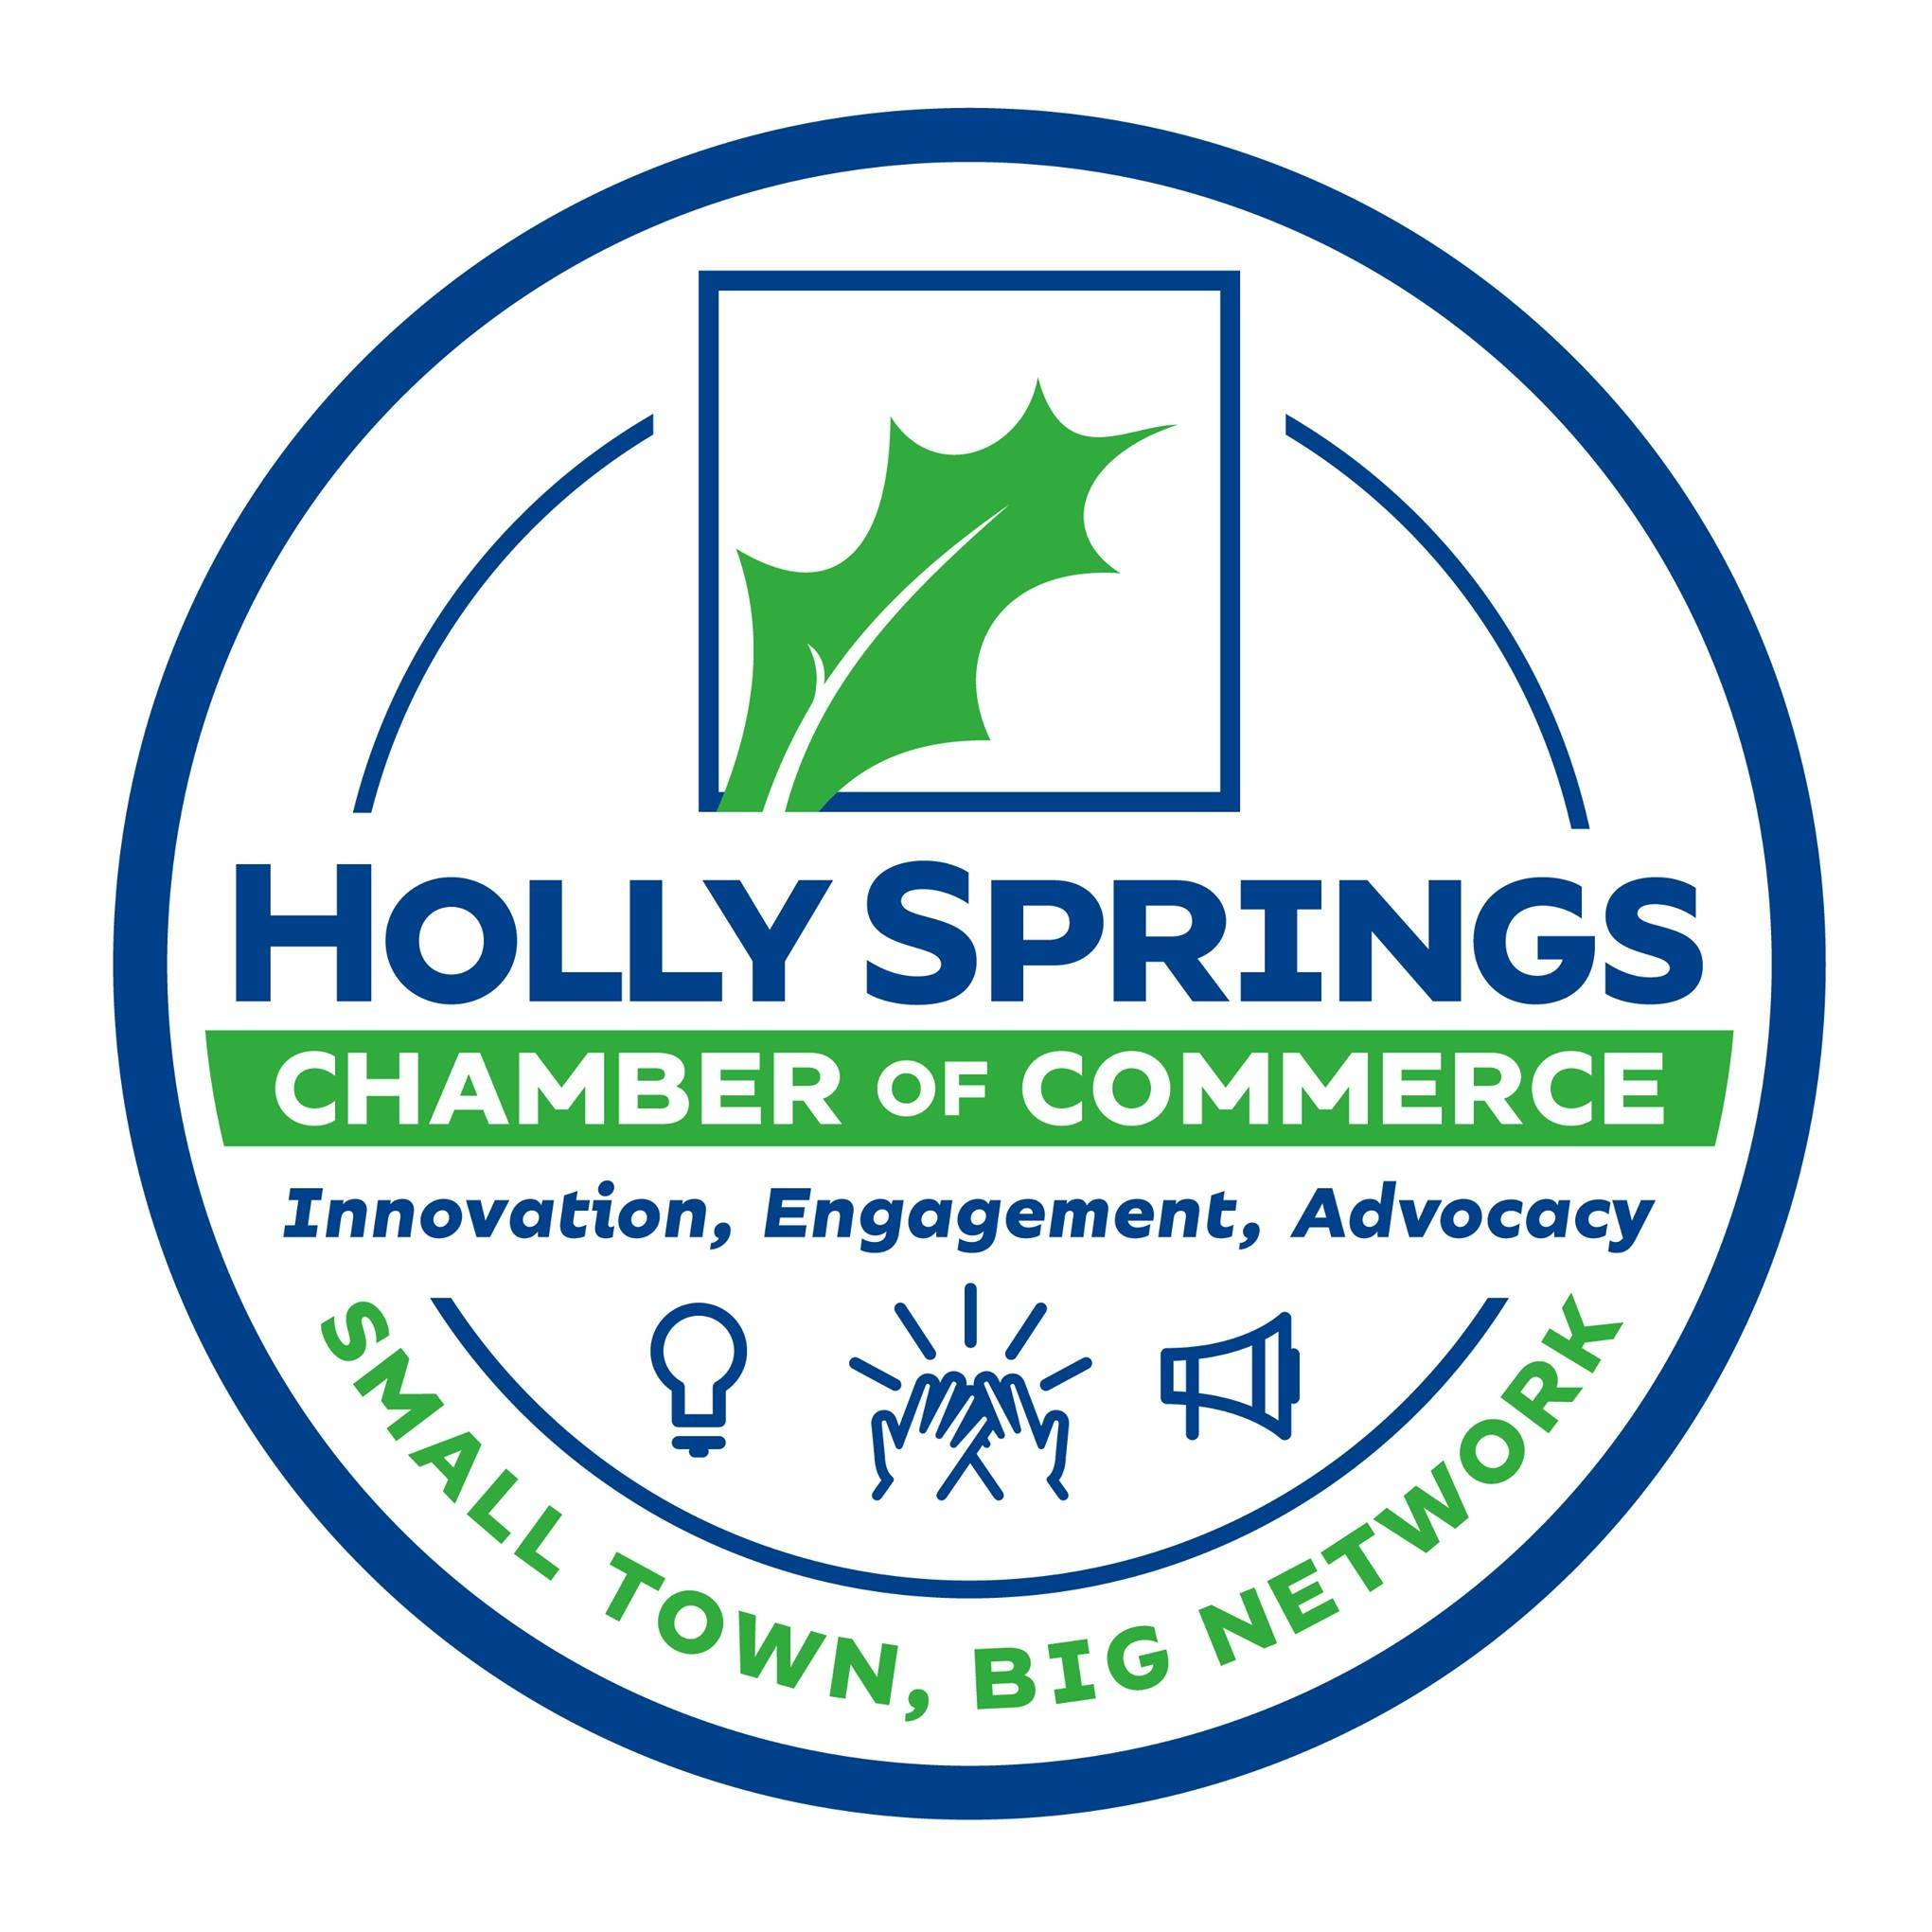 holly springs chamber of commerce logo.jpg